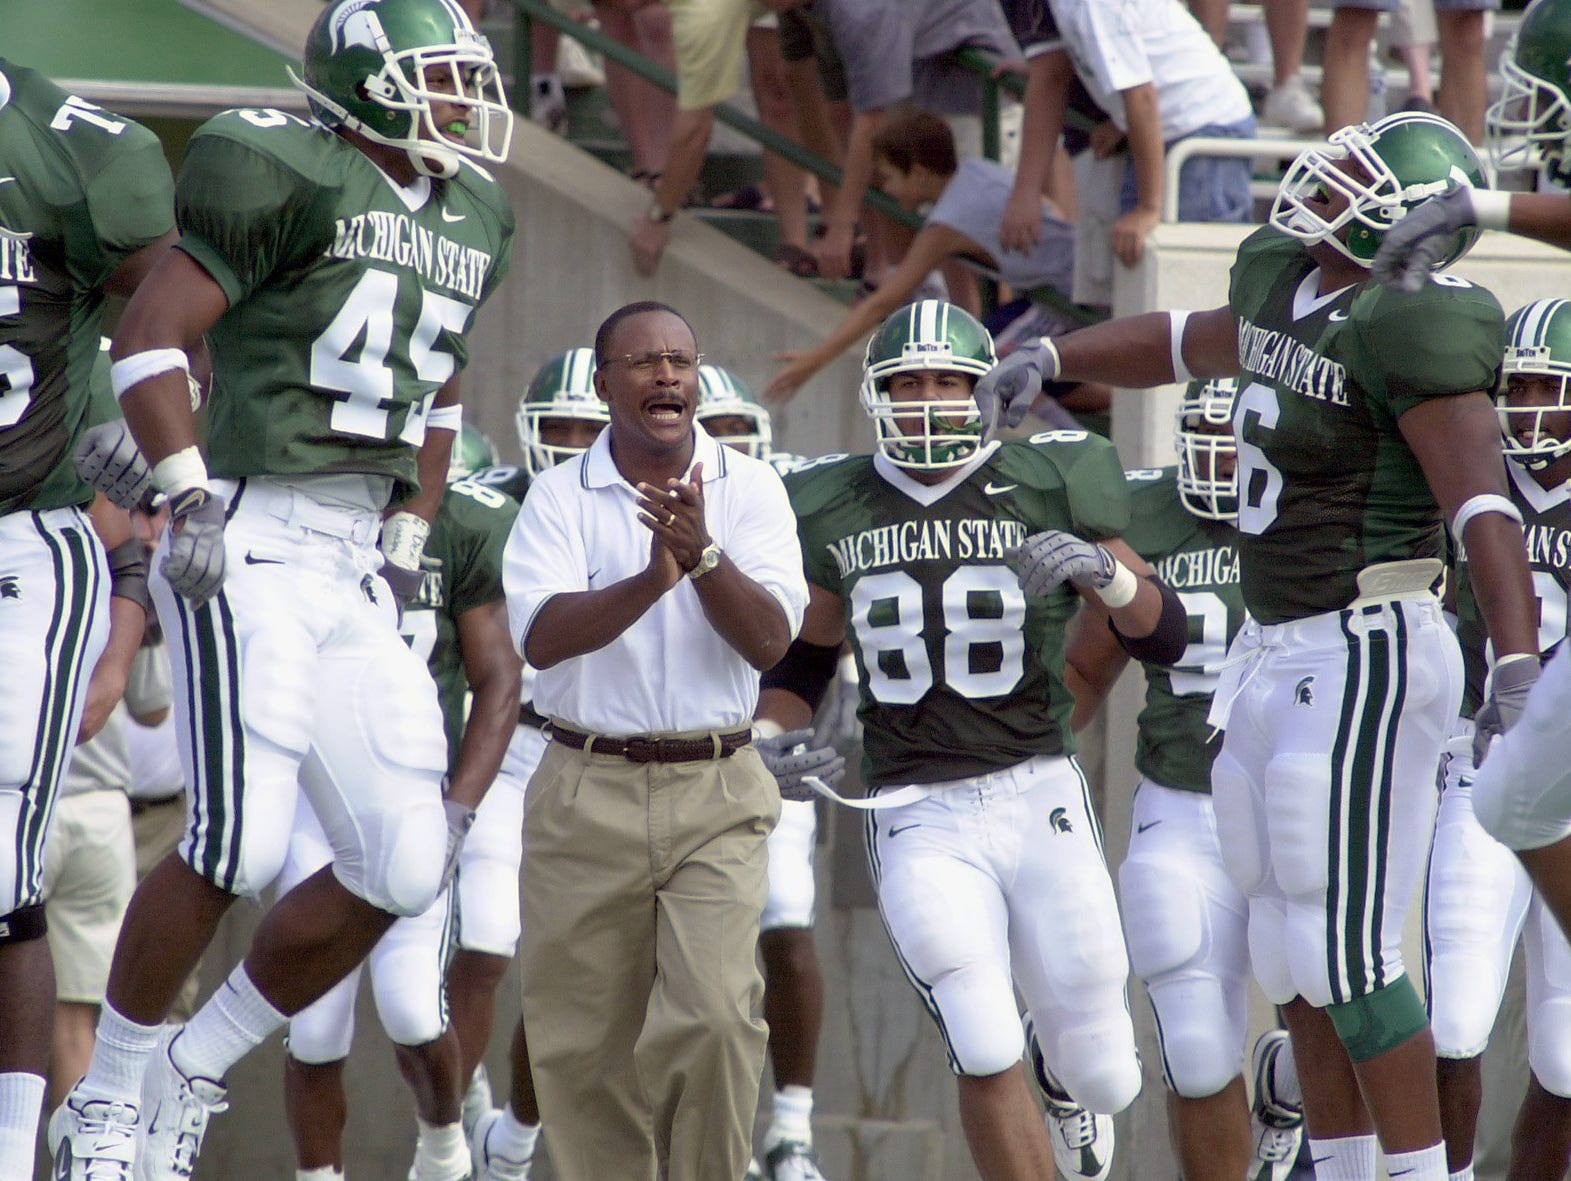 - MSU head football coach Bobby Williams, center, leads his team onto the field at Spartan Stadium against Marshall for his first home game as head coach.